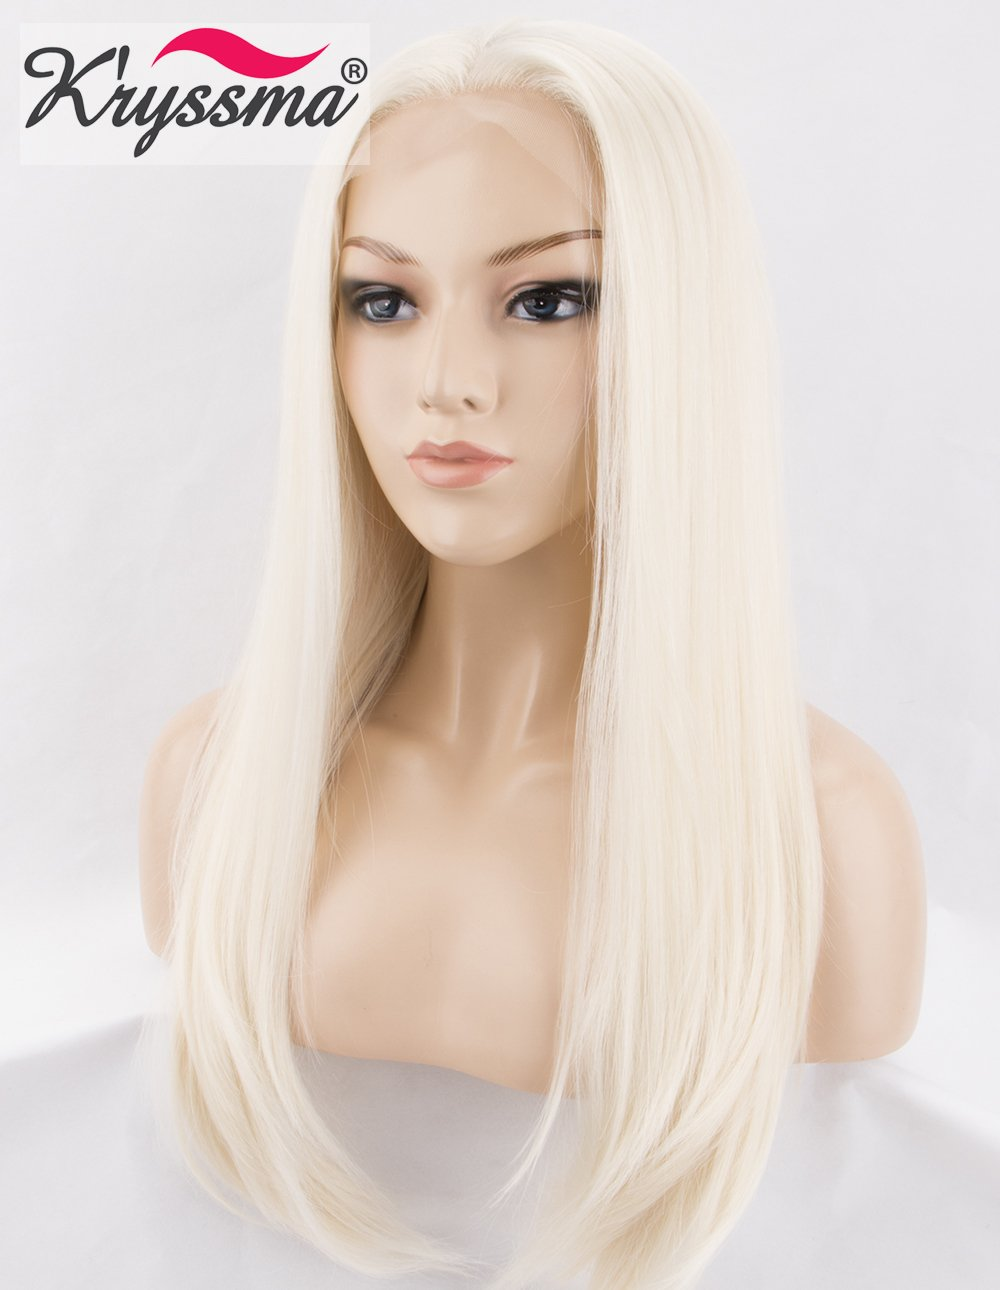 Buy Kryssma Platinum Blonde Synthetic Lace Front Wigs For Women Natural Straight Light Blonde Wig Medium Length Glueless Synthetic Wig 18 Inches Online At Low Prices In India Amazon In